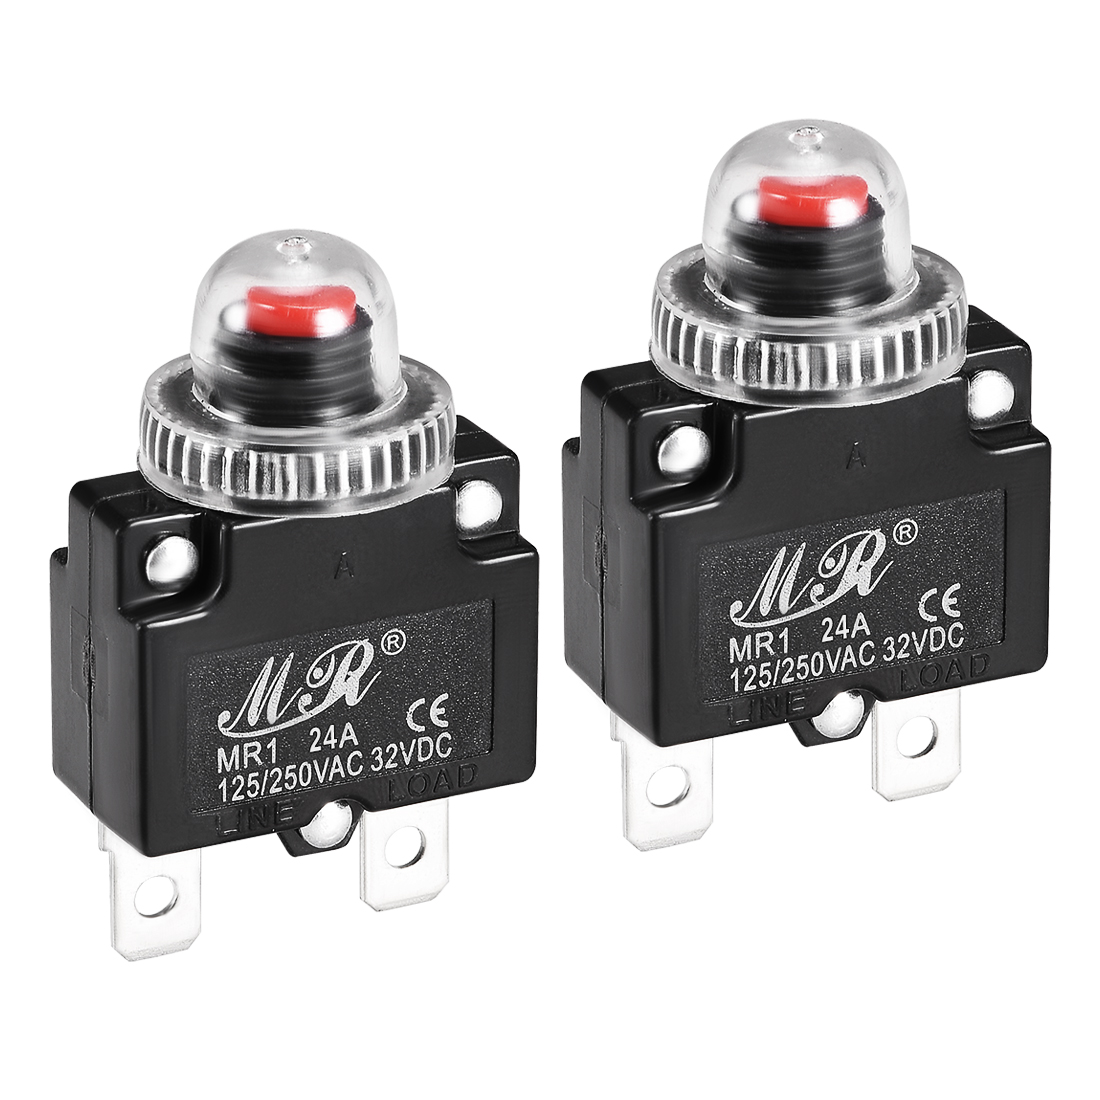 2 Pcs 24A 125/250V Push Button Reset Overload Protector Thermal Circuit Breaker